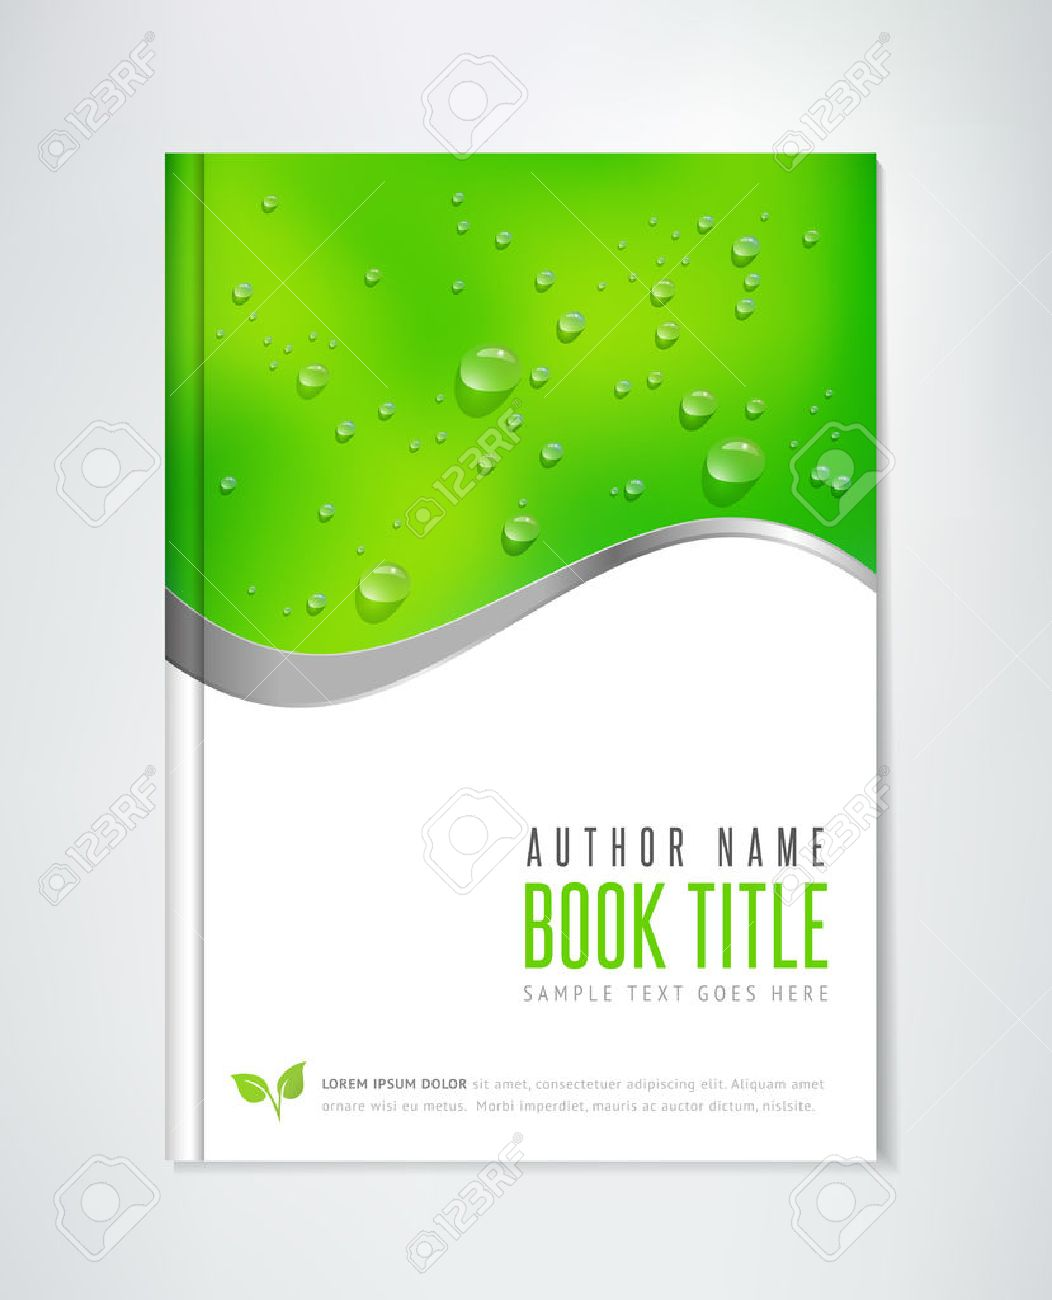 Brochure Design - vector template. Can be used for ecological themes, organic agriculture, healthy lifestyle topics. - 50372256